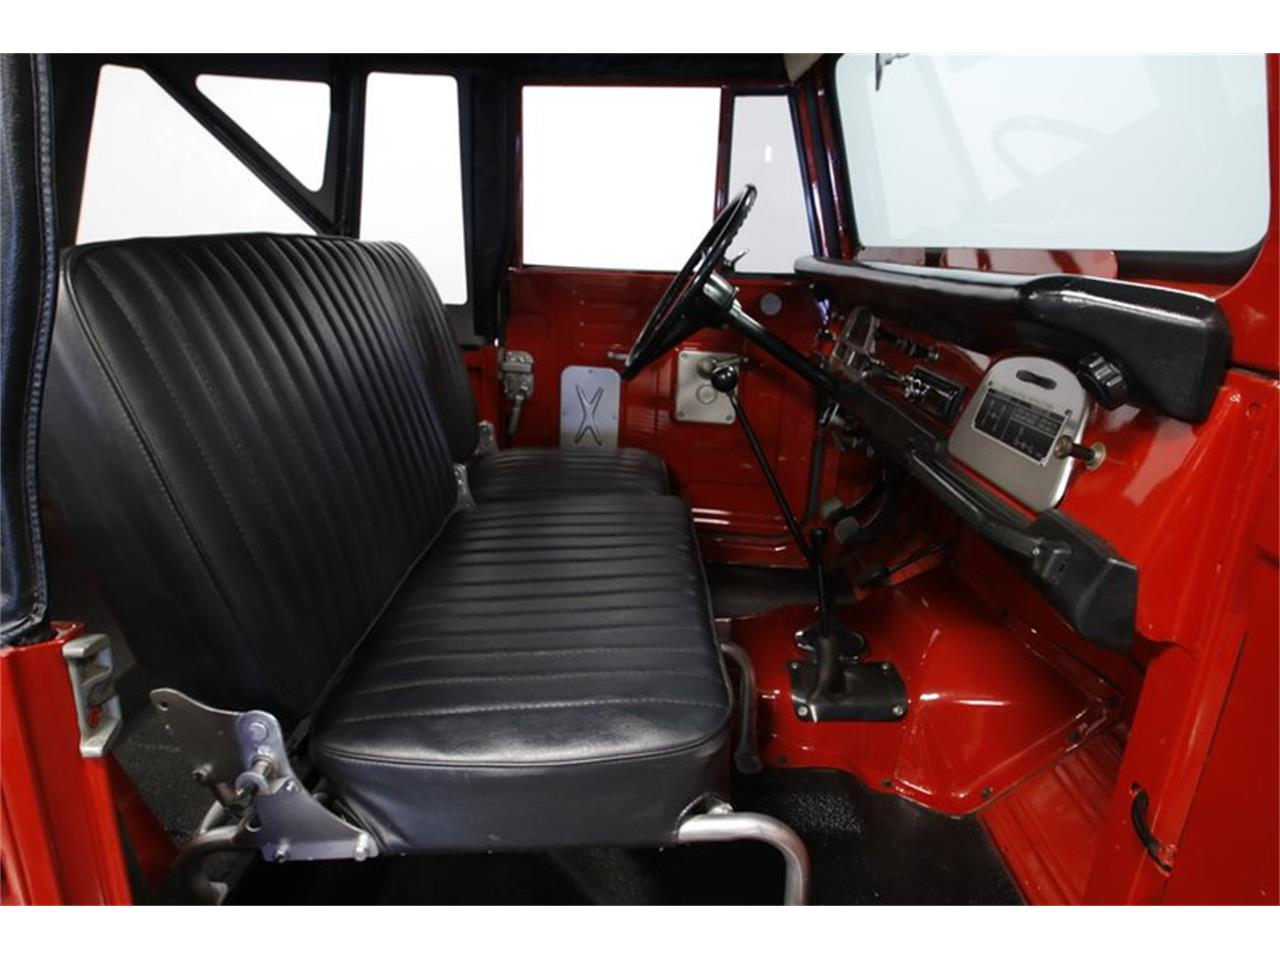 Large Picture of 1972 Toyota Land Cruiser FJ located in Concord North Carolina Offered by Streetside Classics - Charlotte - N3MA